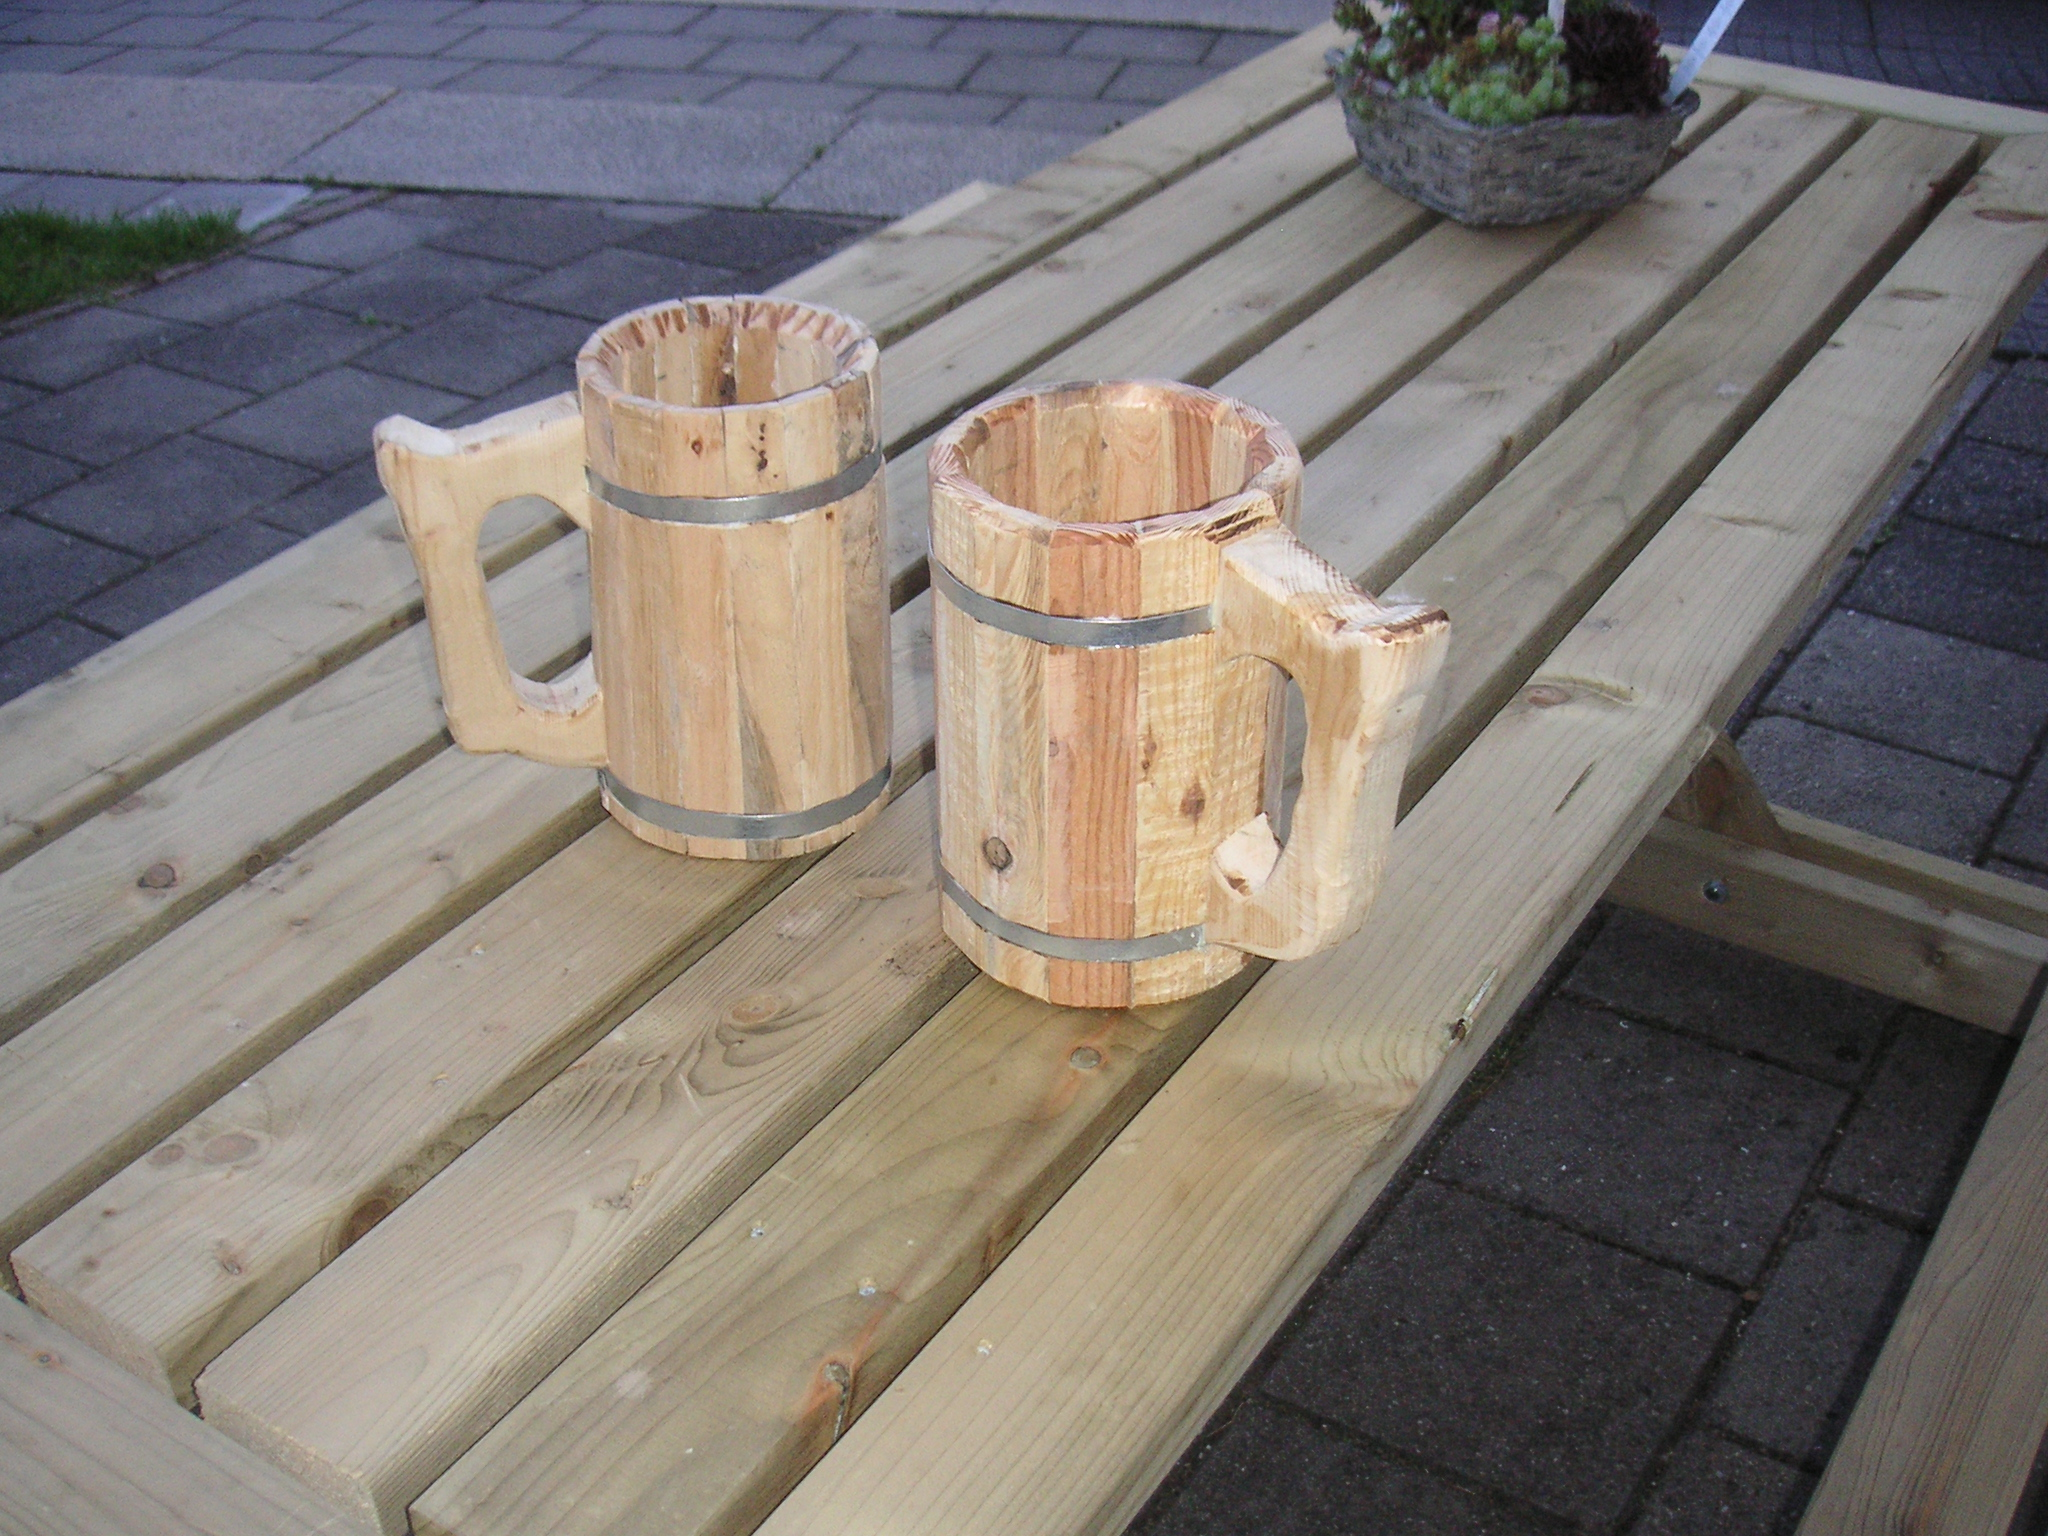 Wooden Beer Mug 7 Steps With Pictures Instructables